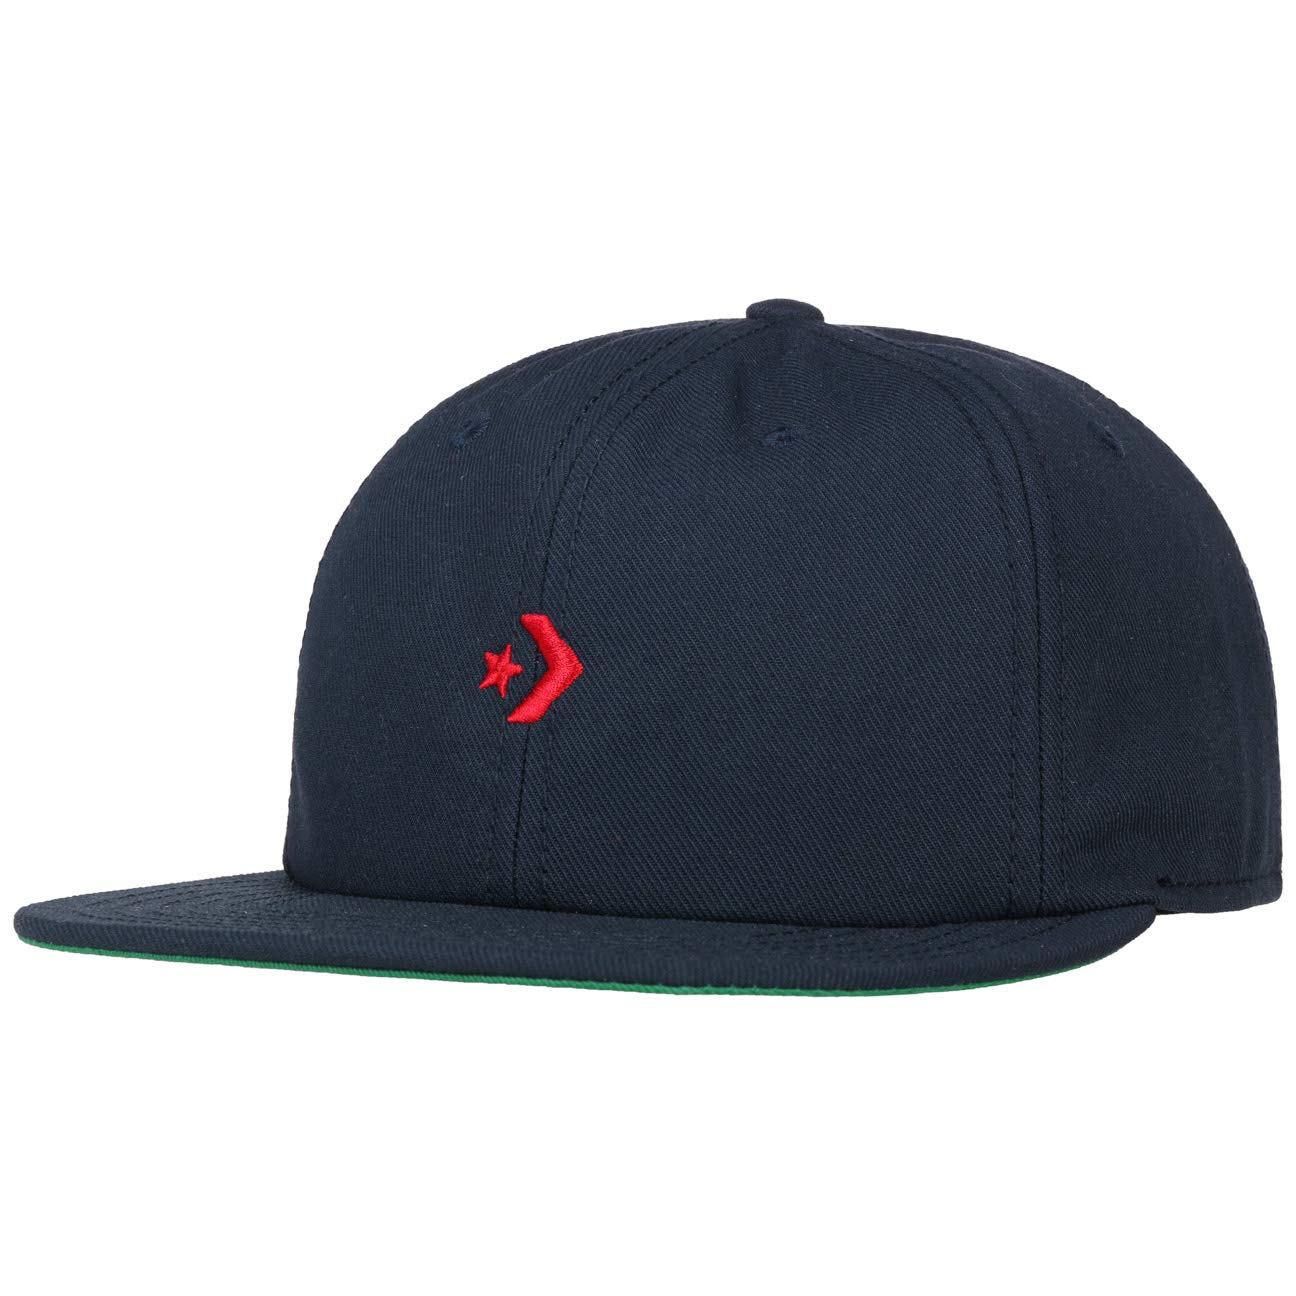 Converse Star Chev Fall Weight Cap Basecap Baseballcap